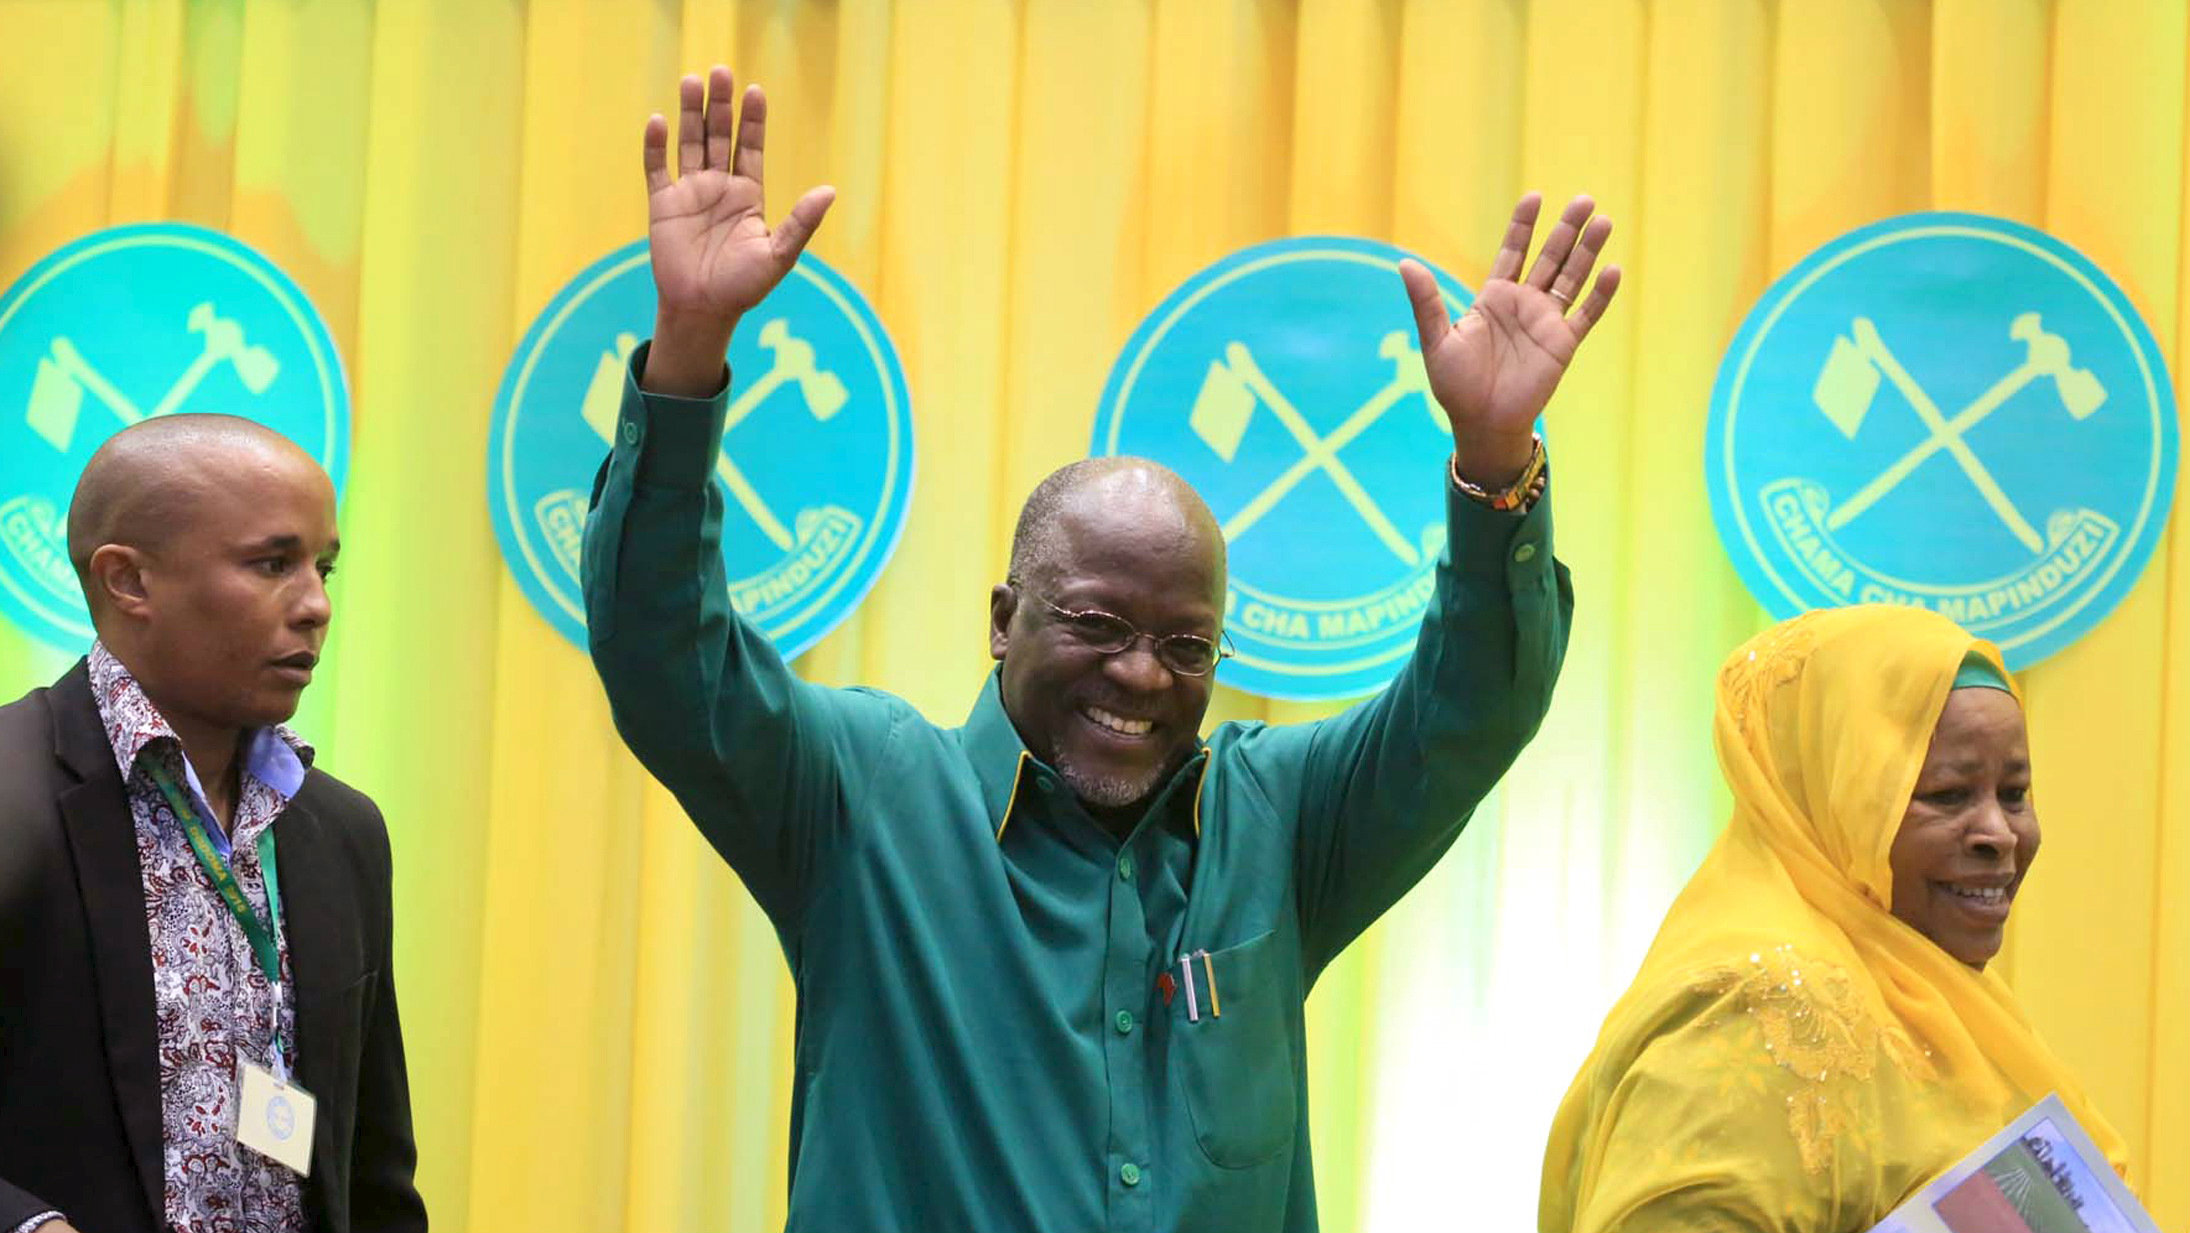 Tanzania's Works Minister John Magufuli (C) salutes delegates after the ruling party Chama Cha Mapinduzi (CCM) elected him as the presidential candidate for the October 25 election in the capital Dodoma, July 12, 2015.